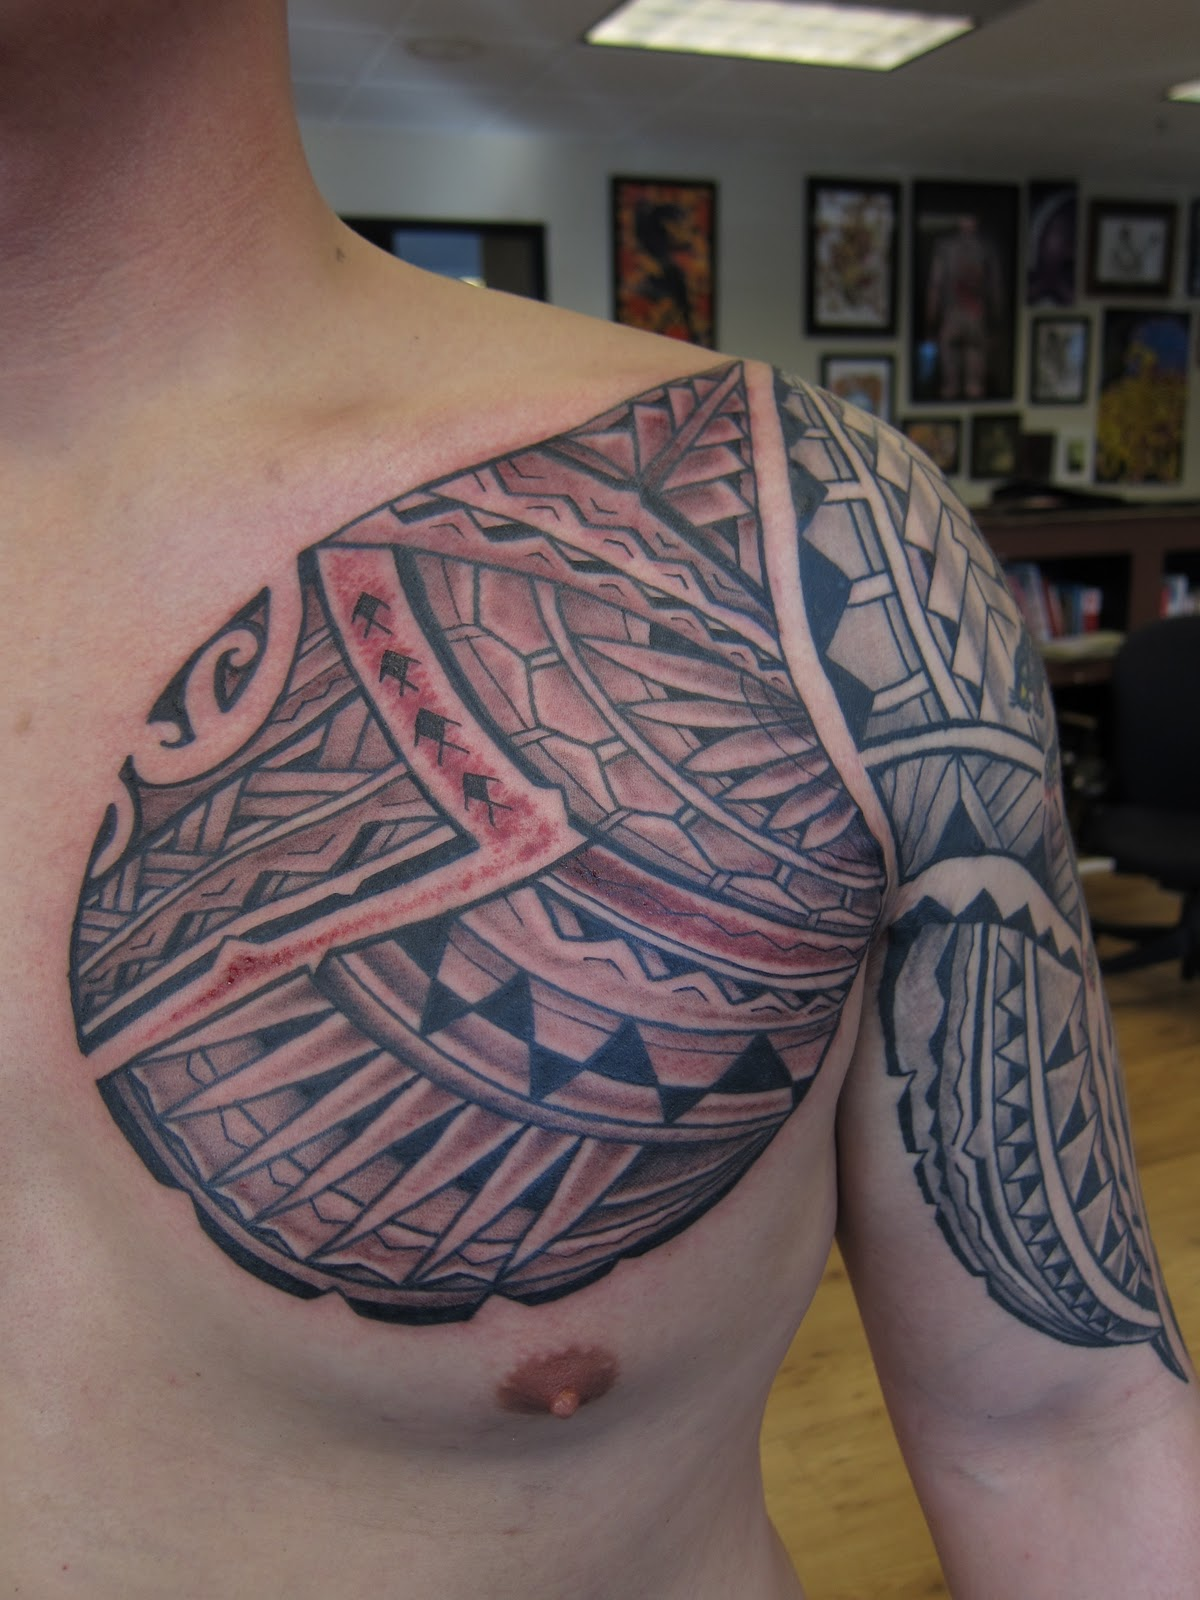 Tattoo Chest Plate: Body Tattoos: January 2011